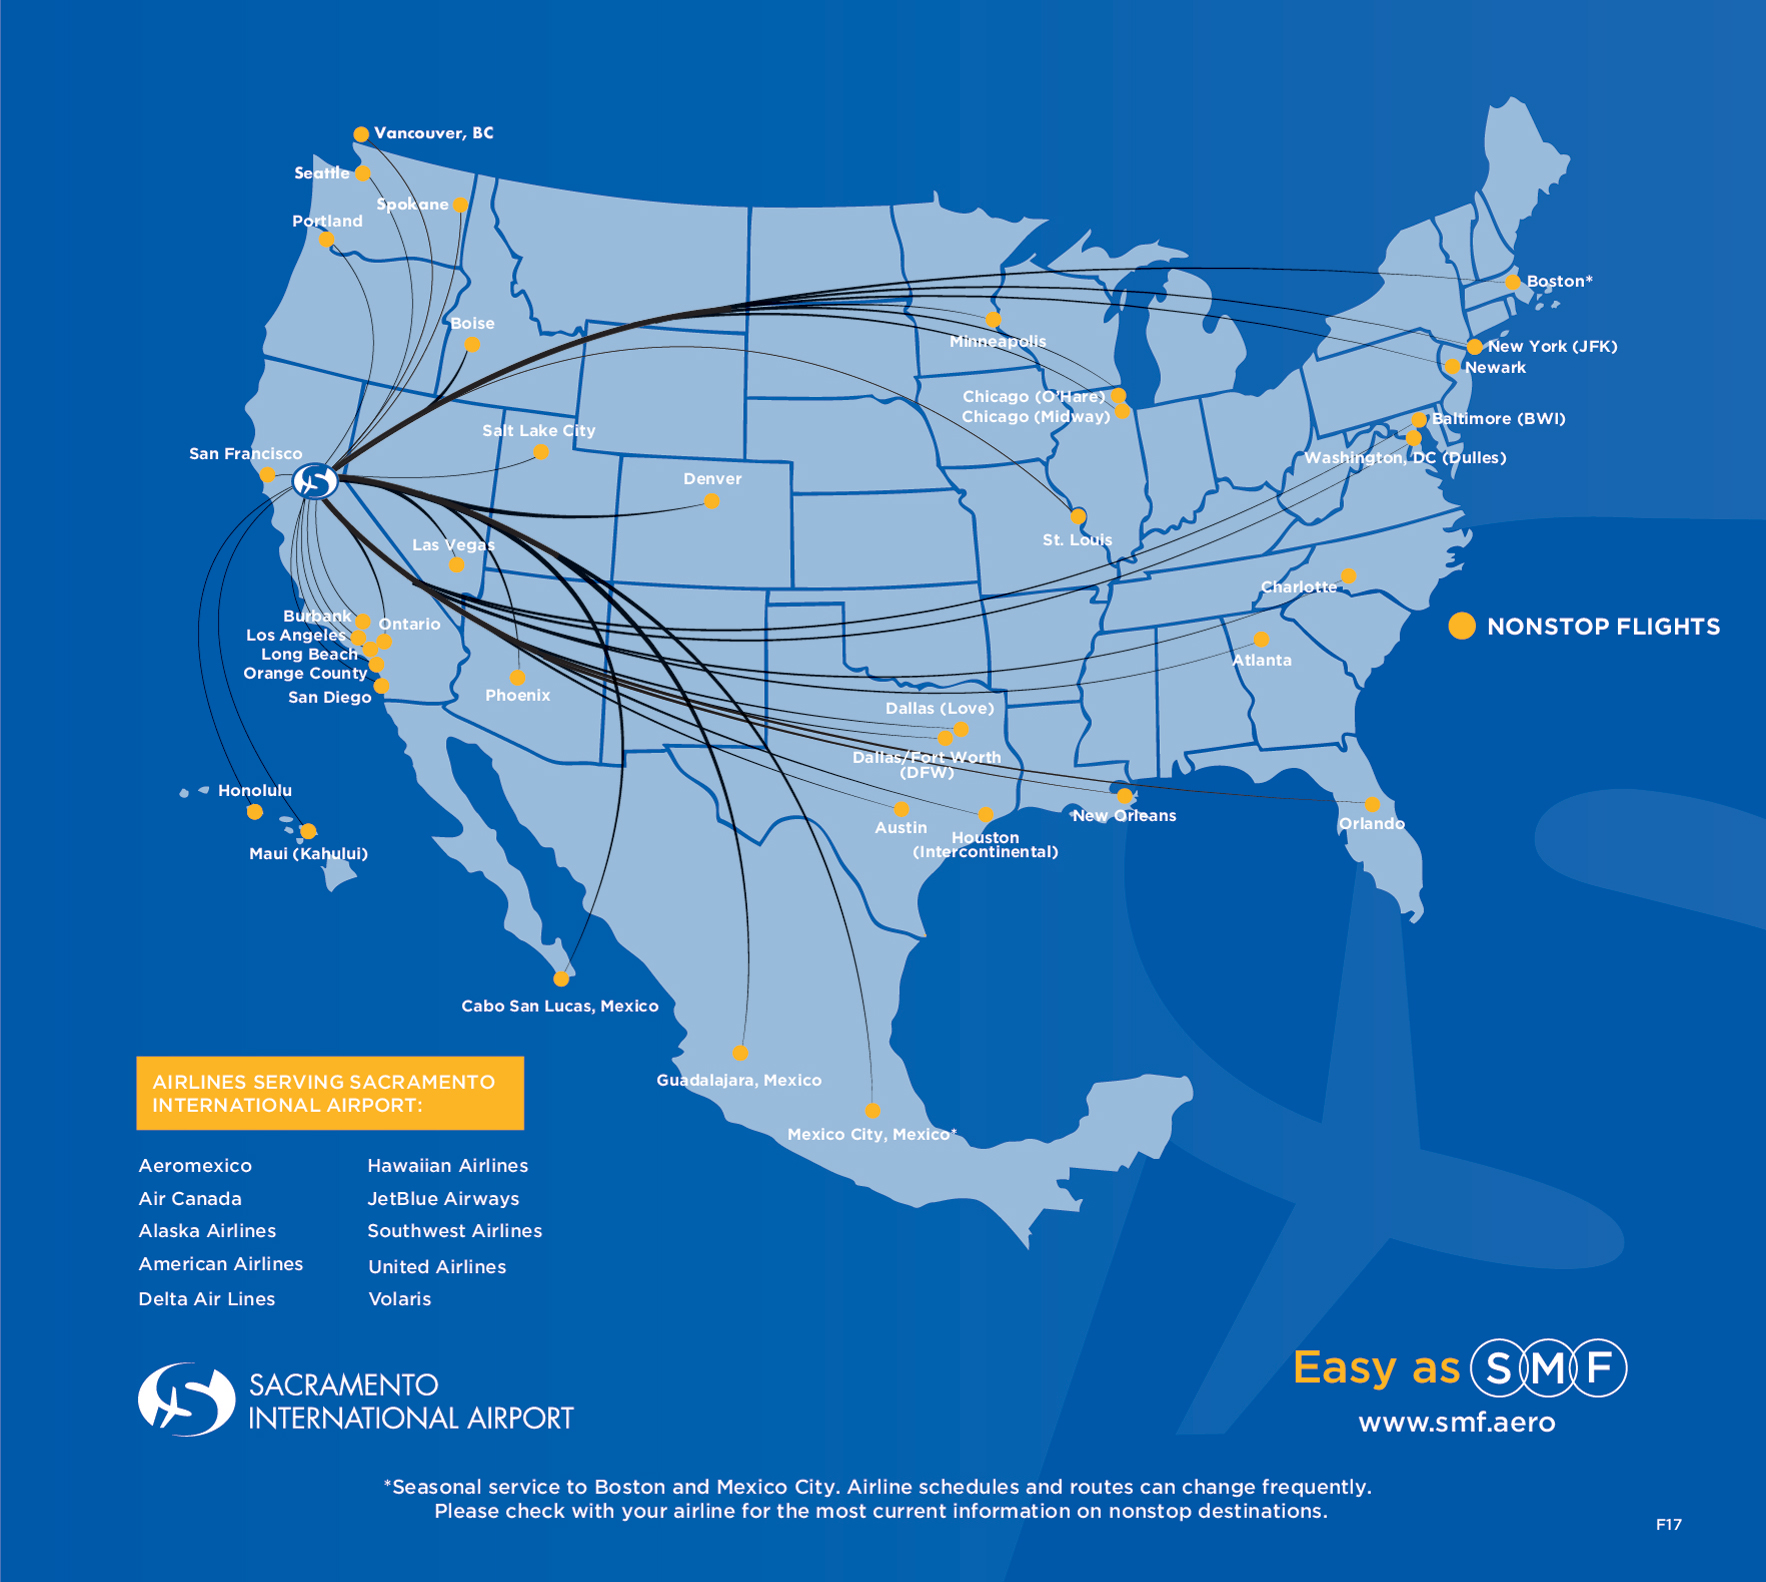 Lots of Flights. Not a lot of stress. Now there's a departure. Map and routes of Airlines Serving Non-stop flights to and from Sacramento International Airport - Aeromexico, Alaska Airlines, American Airlines, Delta Air Lines, Hawaiian Airlines, JetBlue Airways, Southwest Airlines, United Airlines, Volaris